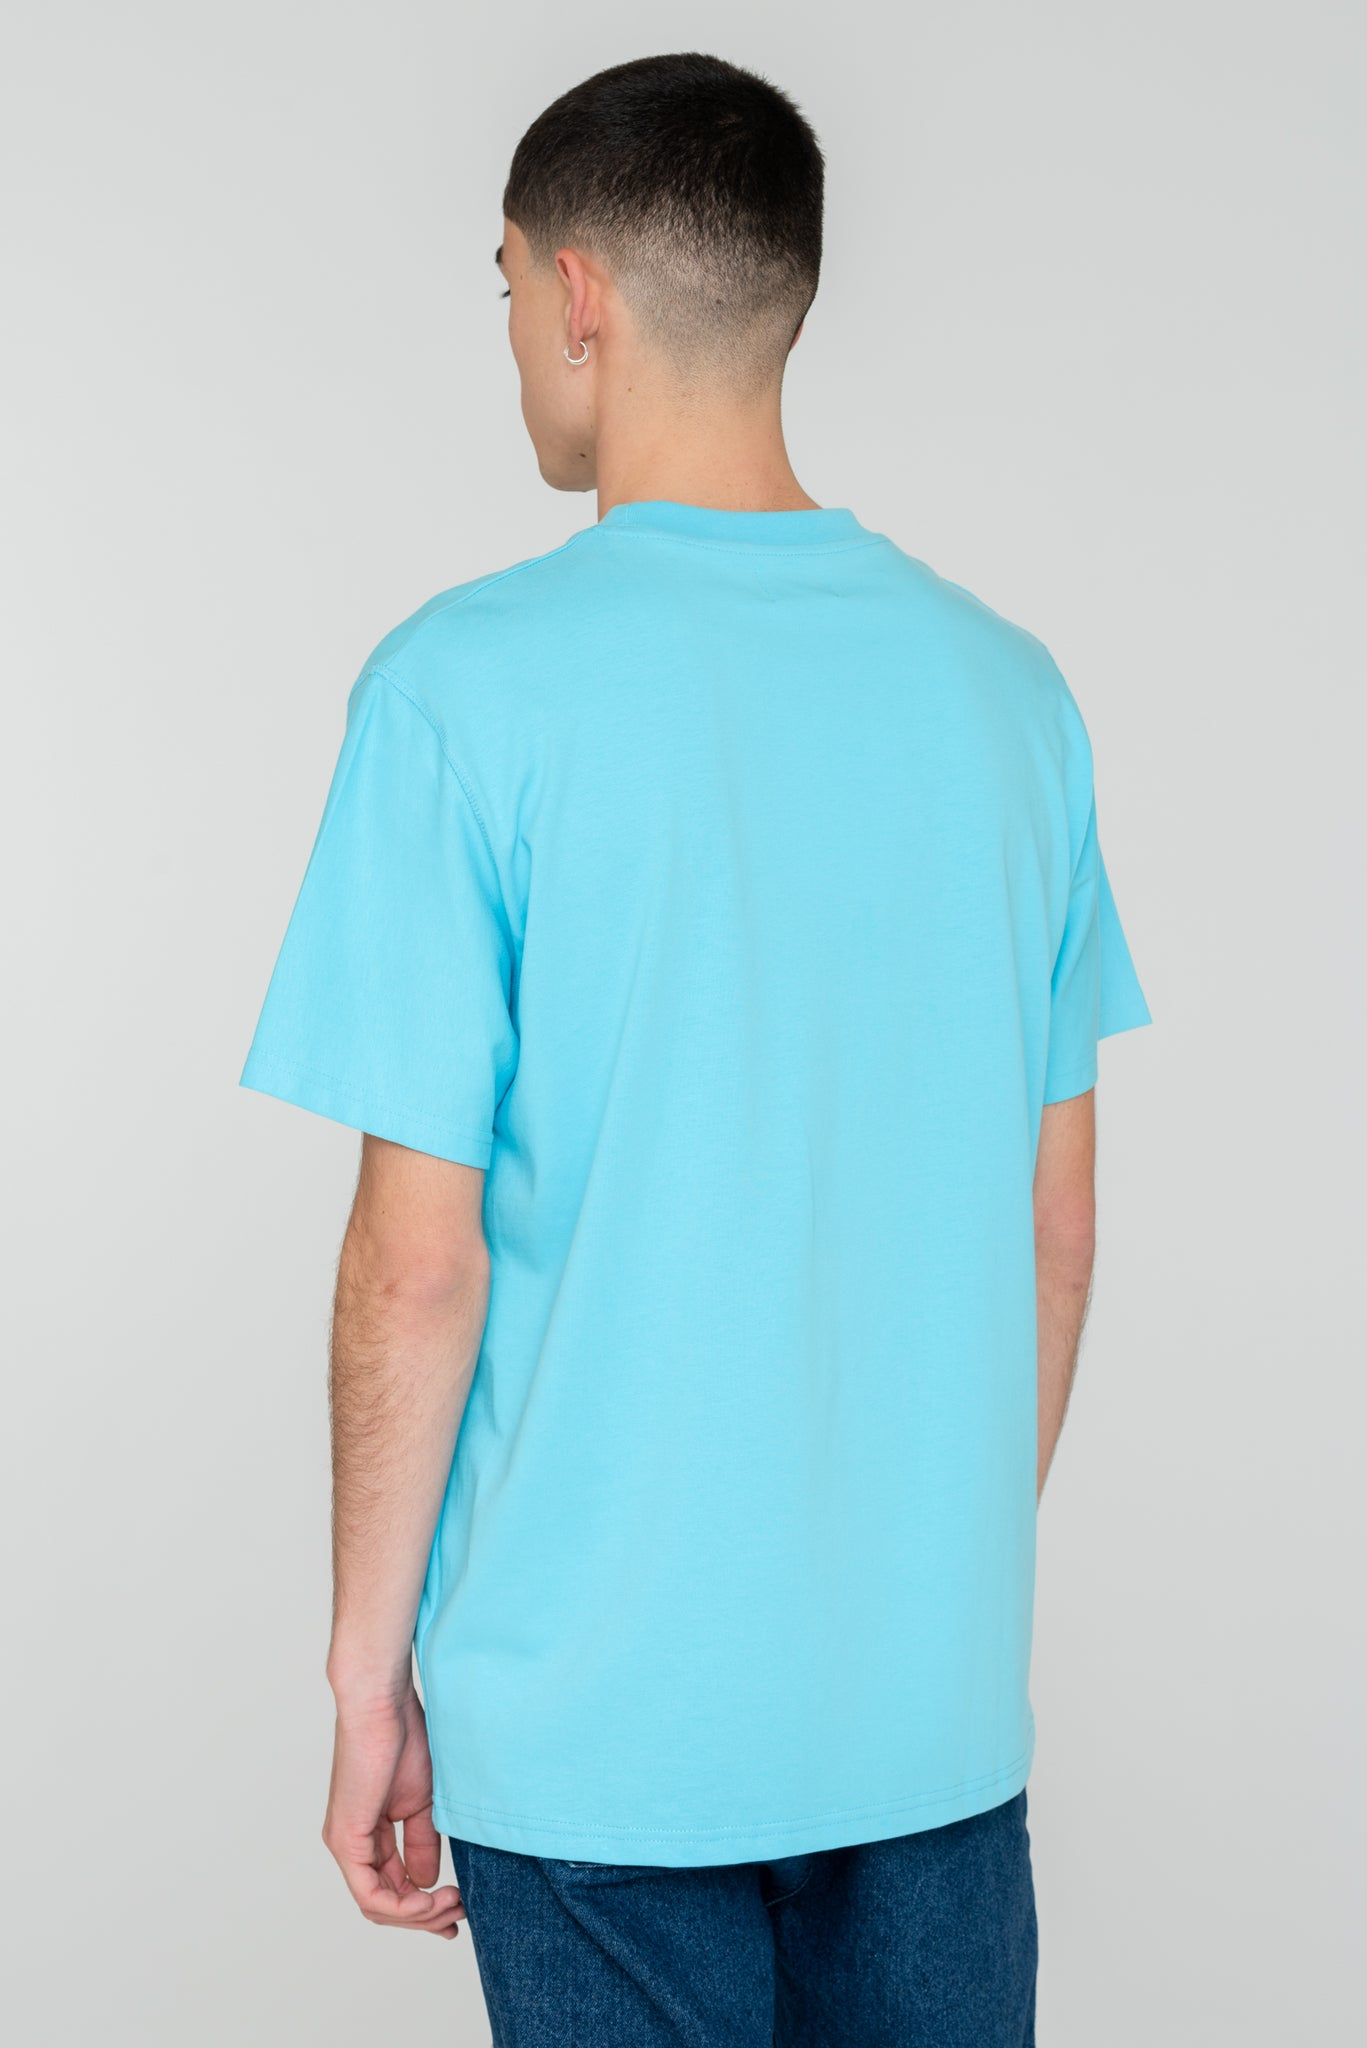 Troy Blue T-shirt